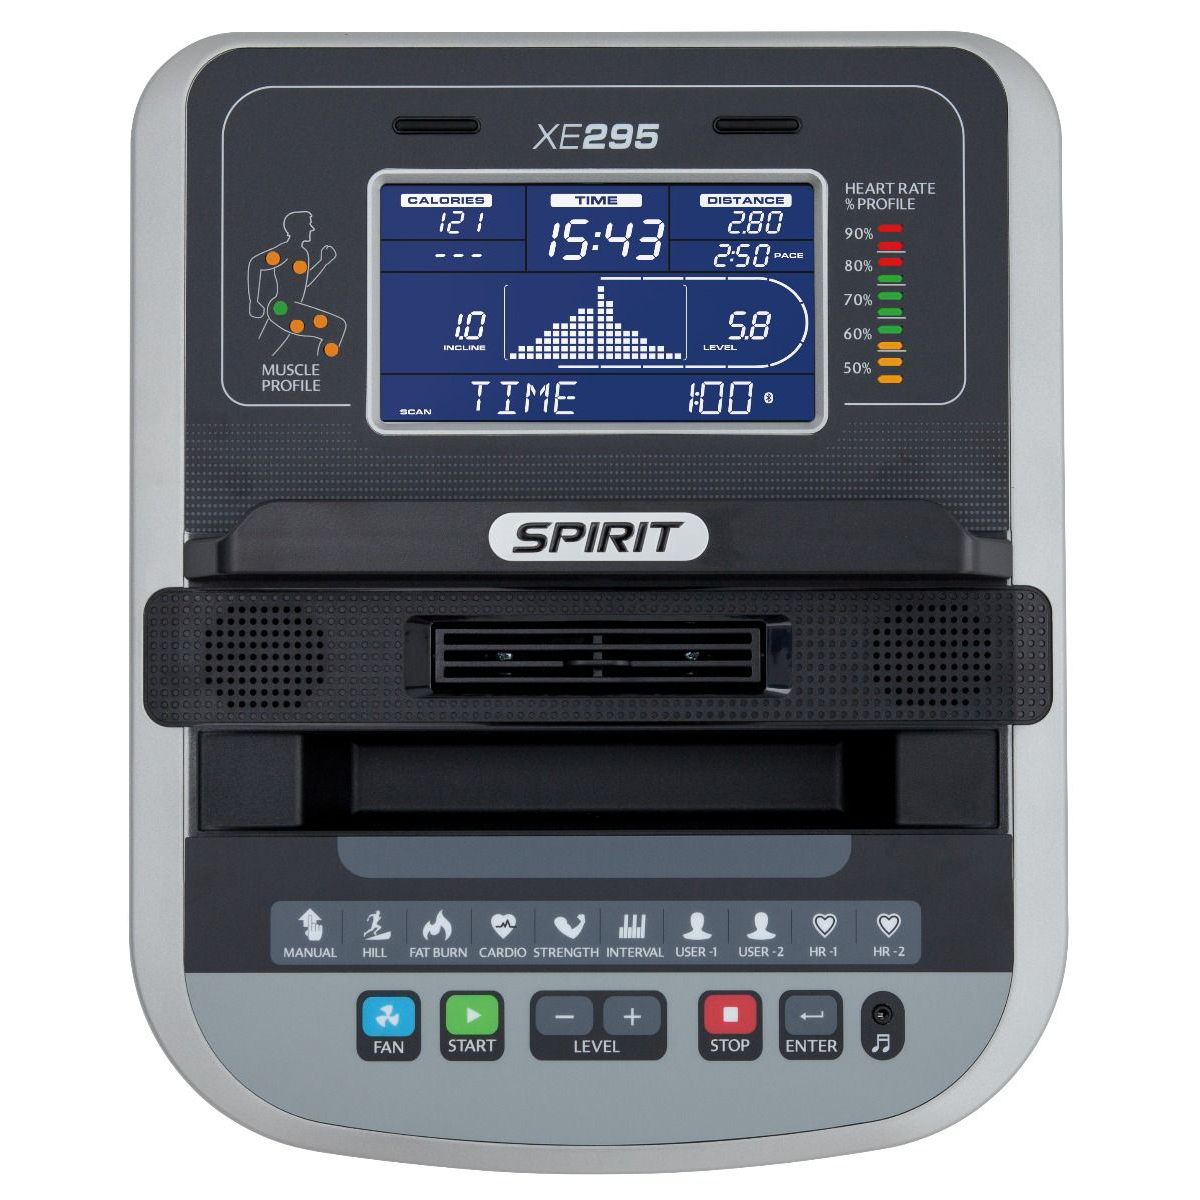 Spirit Fitness XE295 Elliptical Console showing blue LCD screen, red, green, and yellow indicator lights, and control buttons.